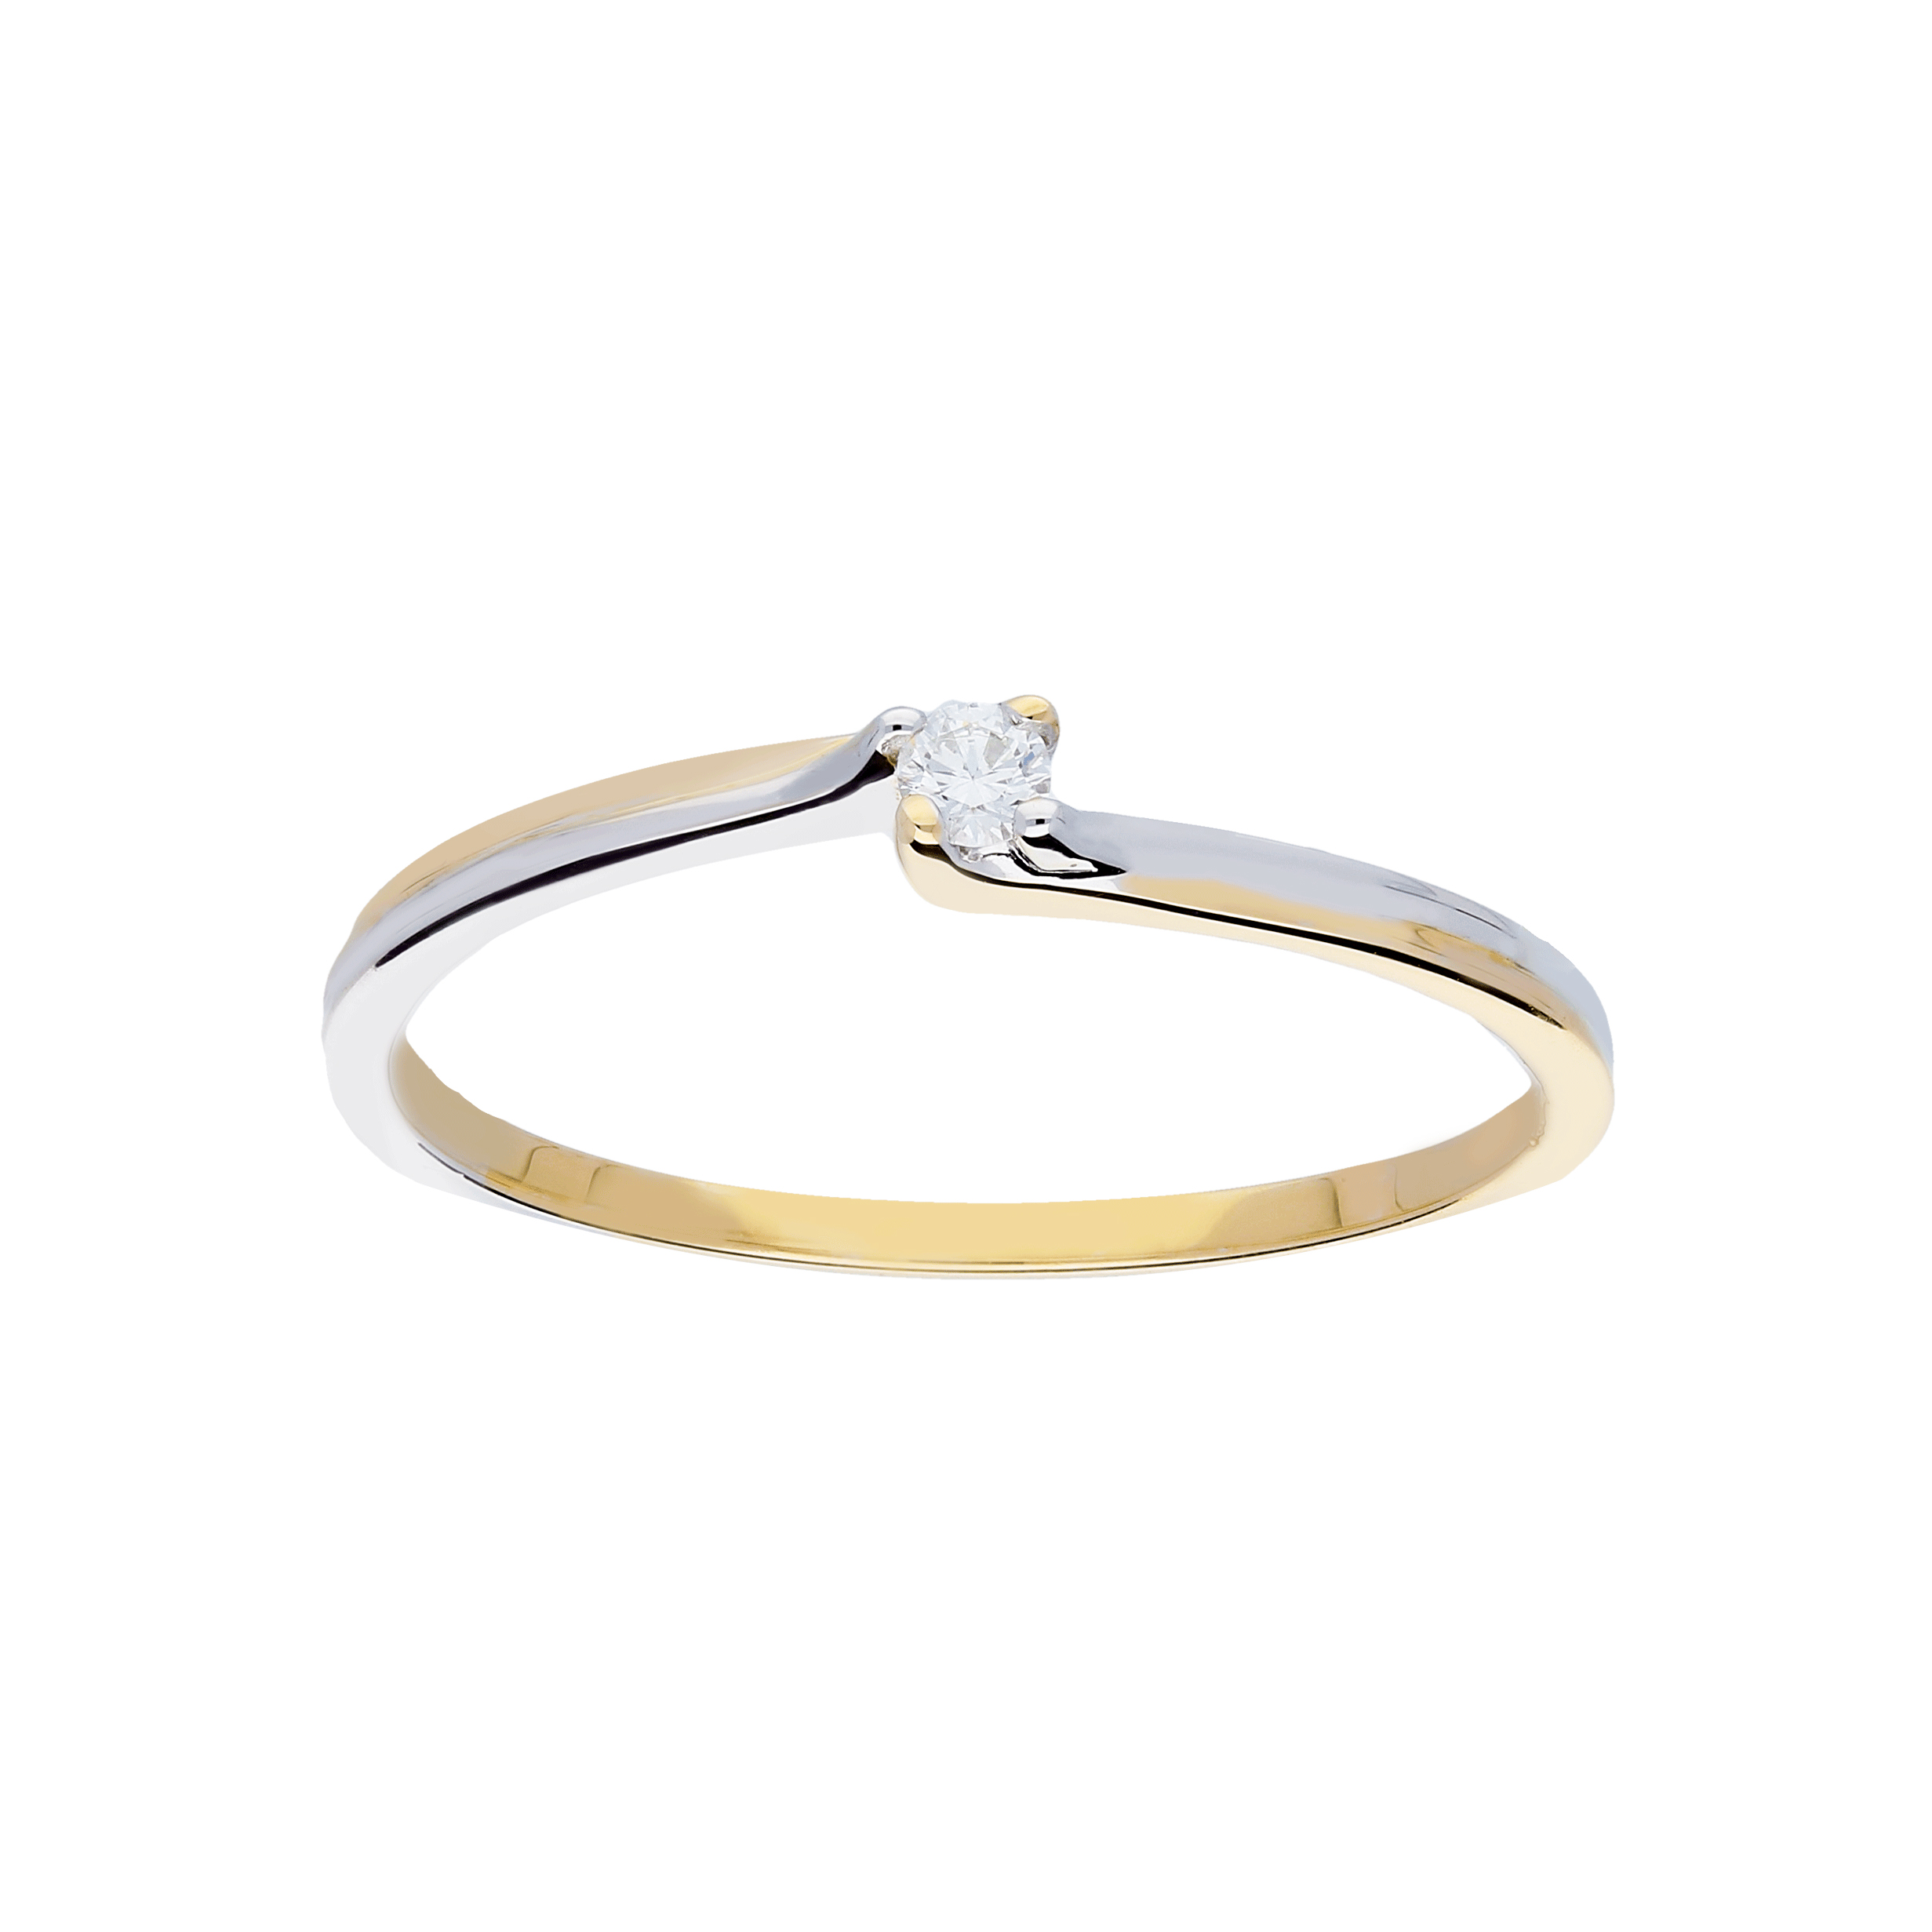 Glow Gouden Ring Bicolor Glanzend Diamant 1 0.04ct G si 214.5229.50